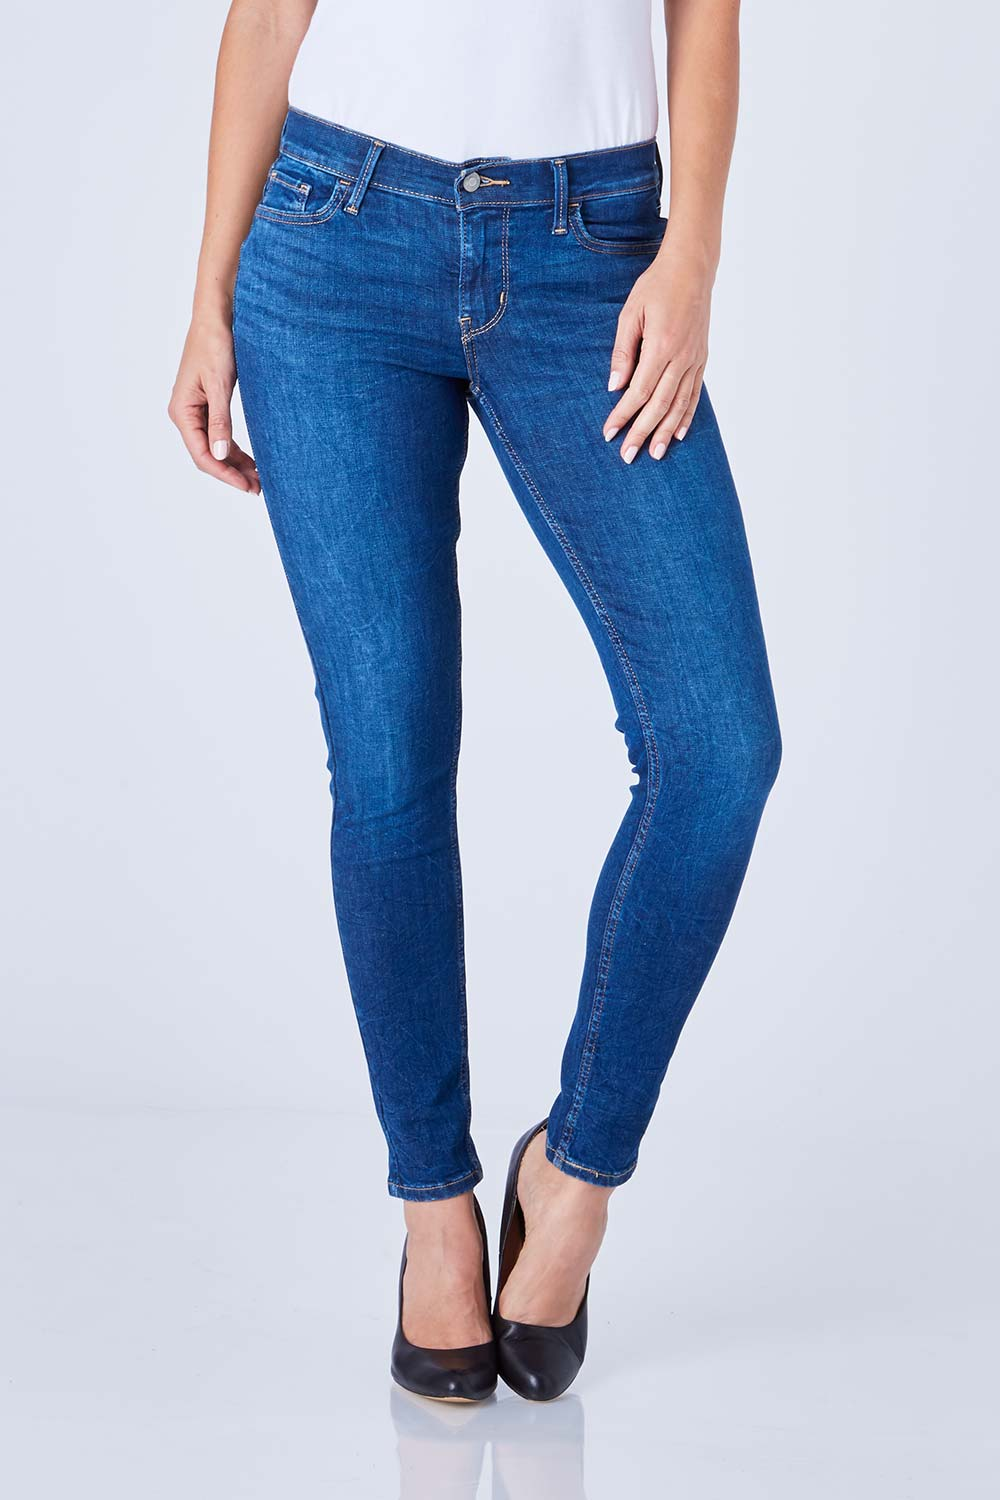 Levis Ladies Jeans Innovation Super Skinny Jean - Womens Skinny Jeans at  Birdsnest Women's Clothing